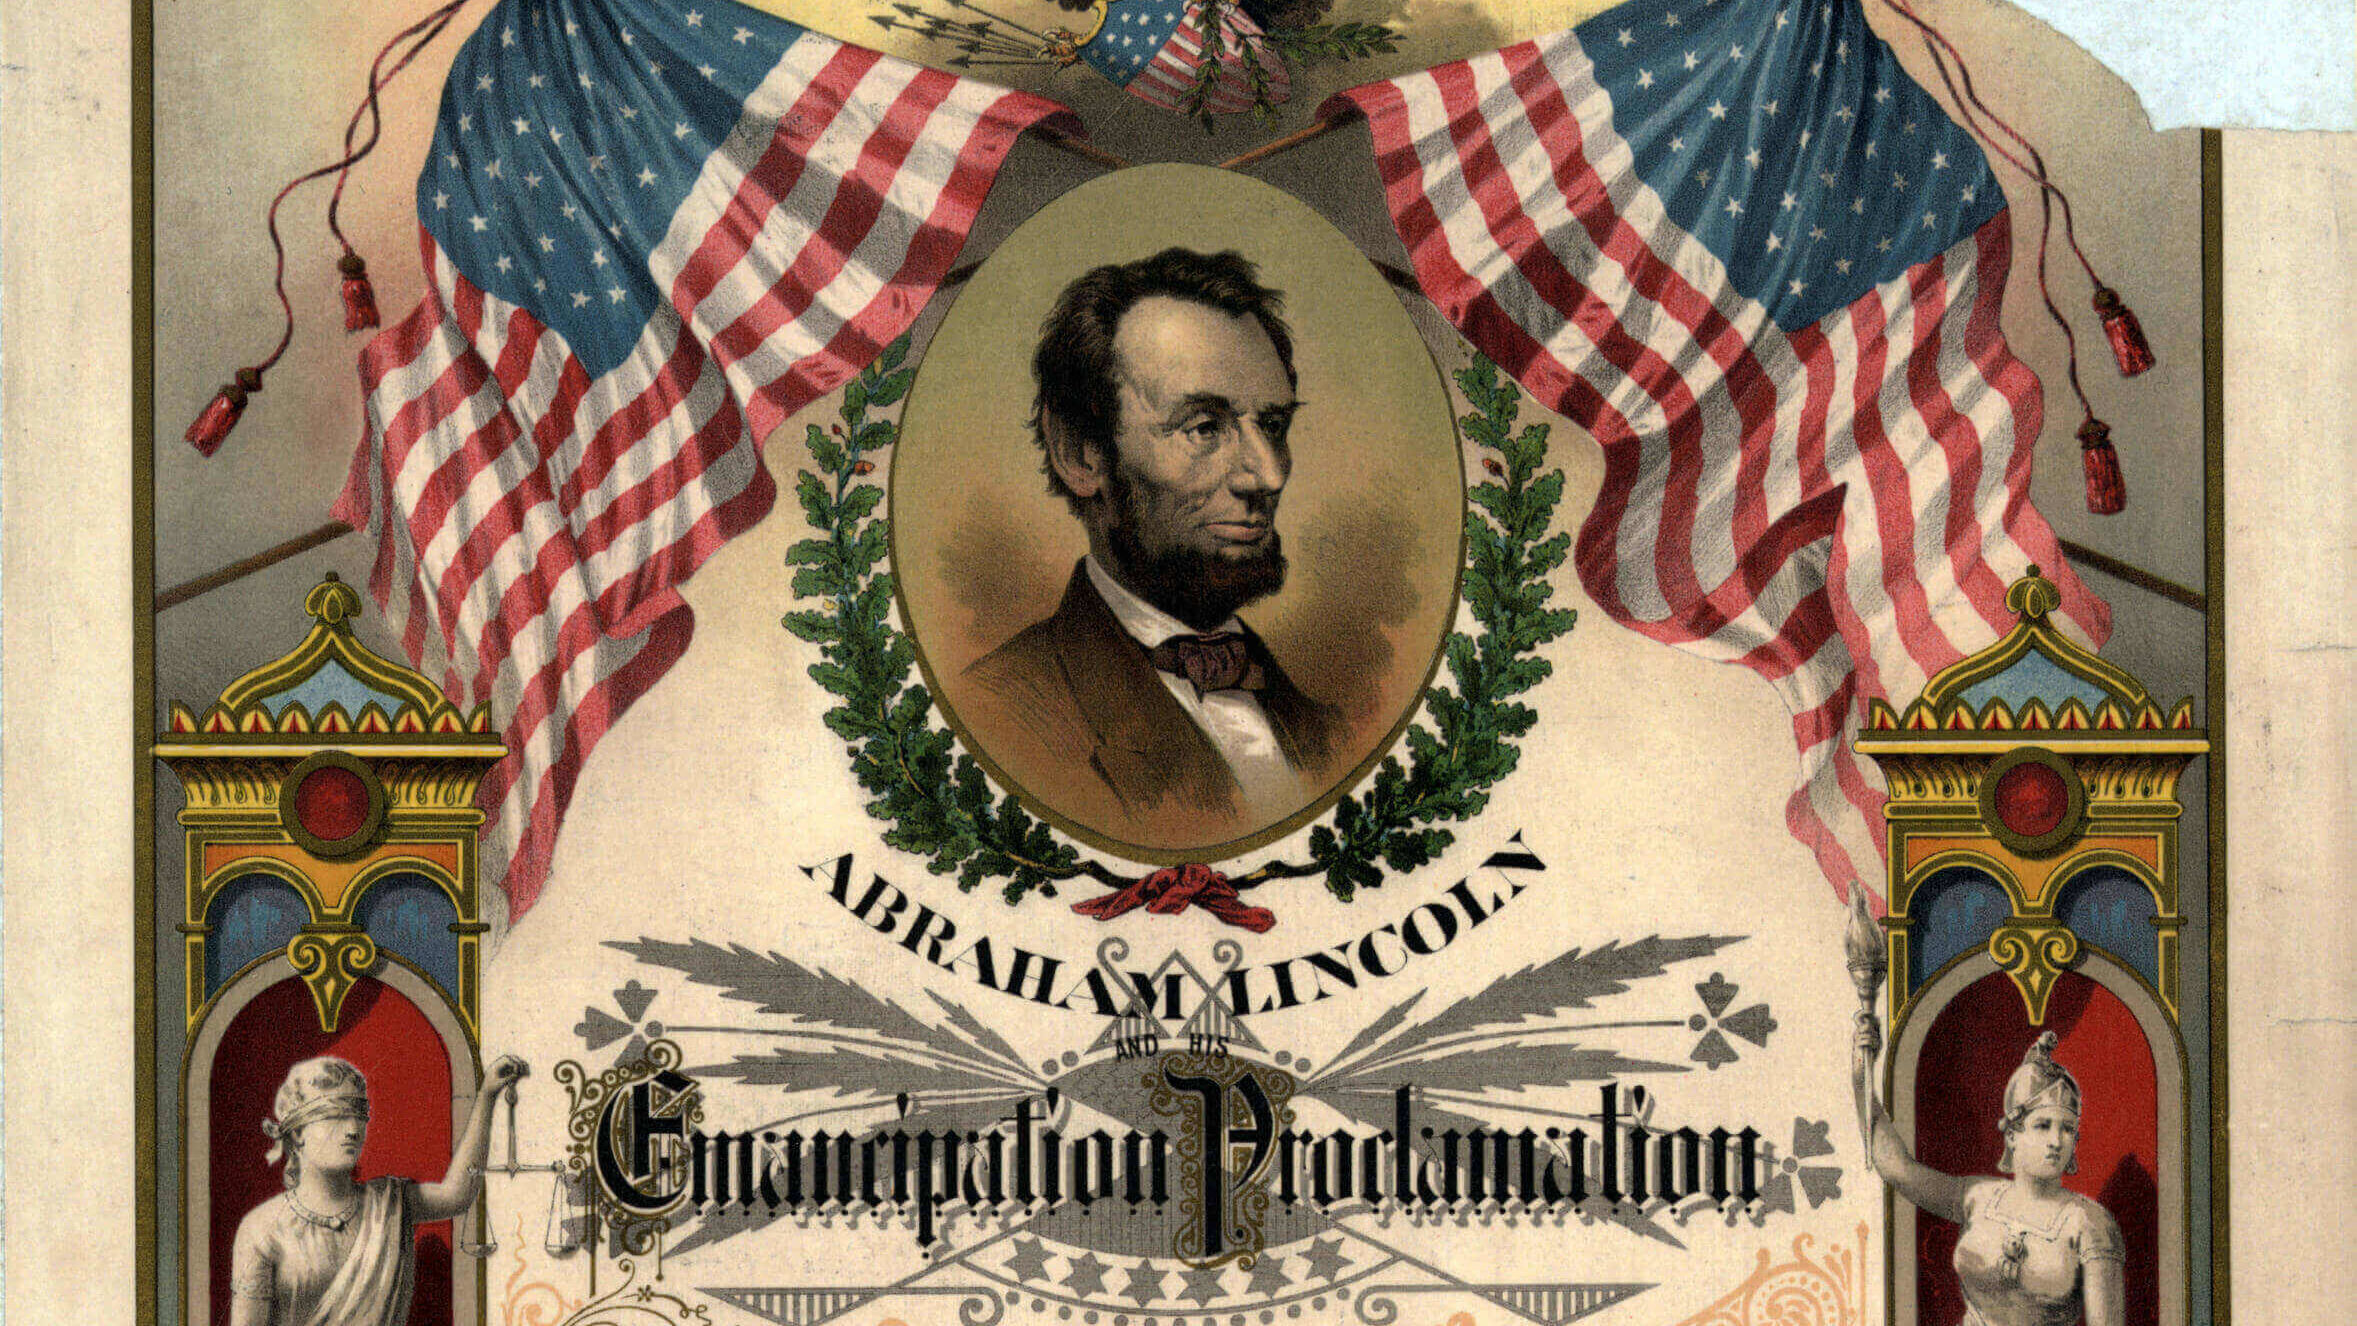 An illustrated copy of the Emancipation Proclamation.